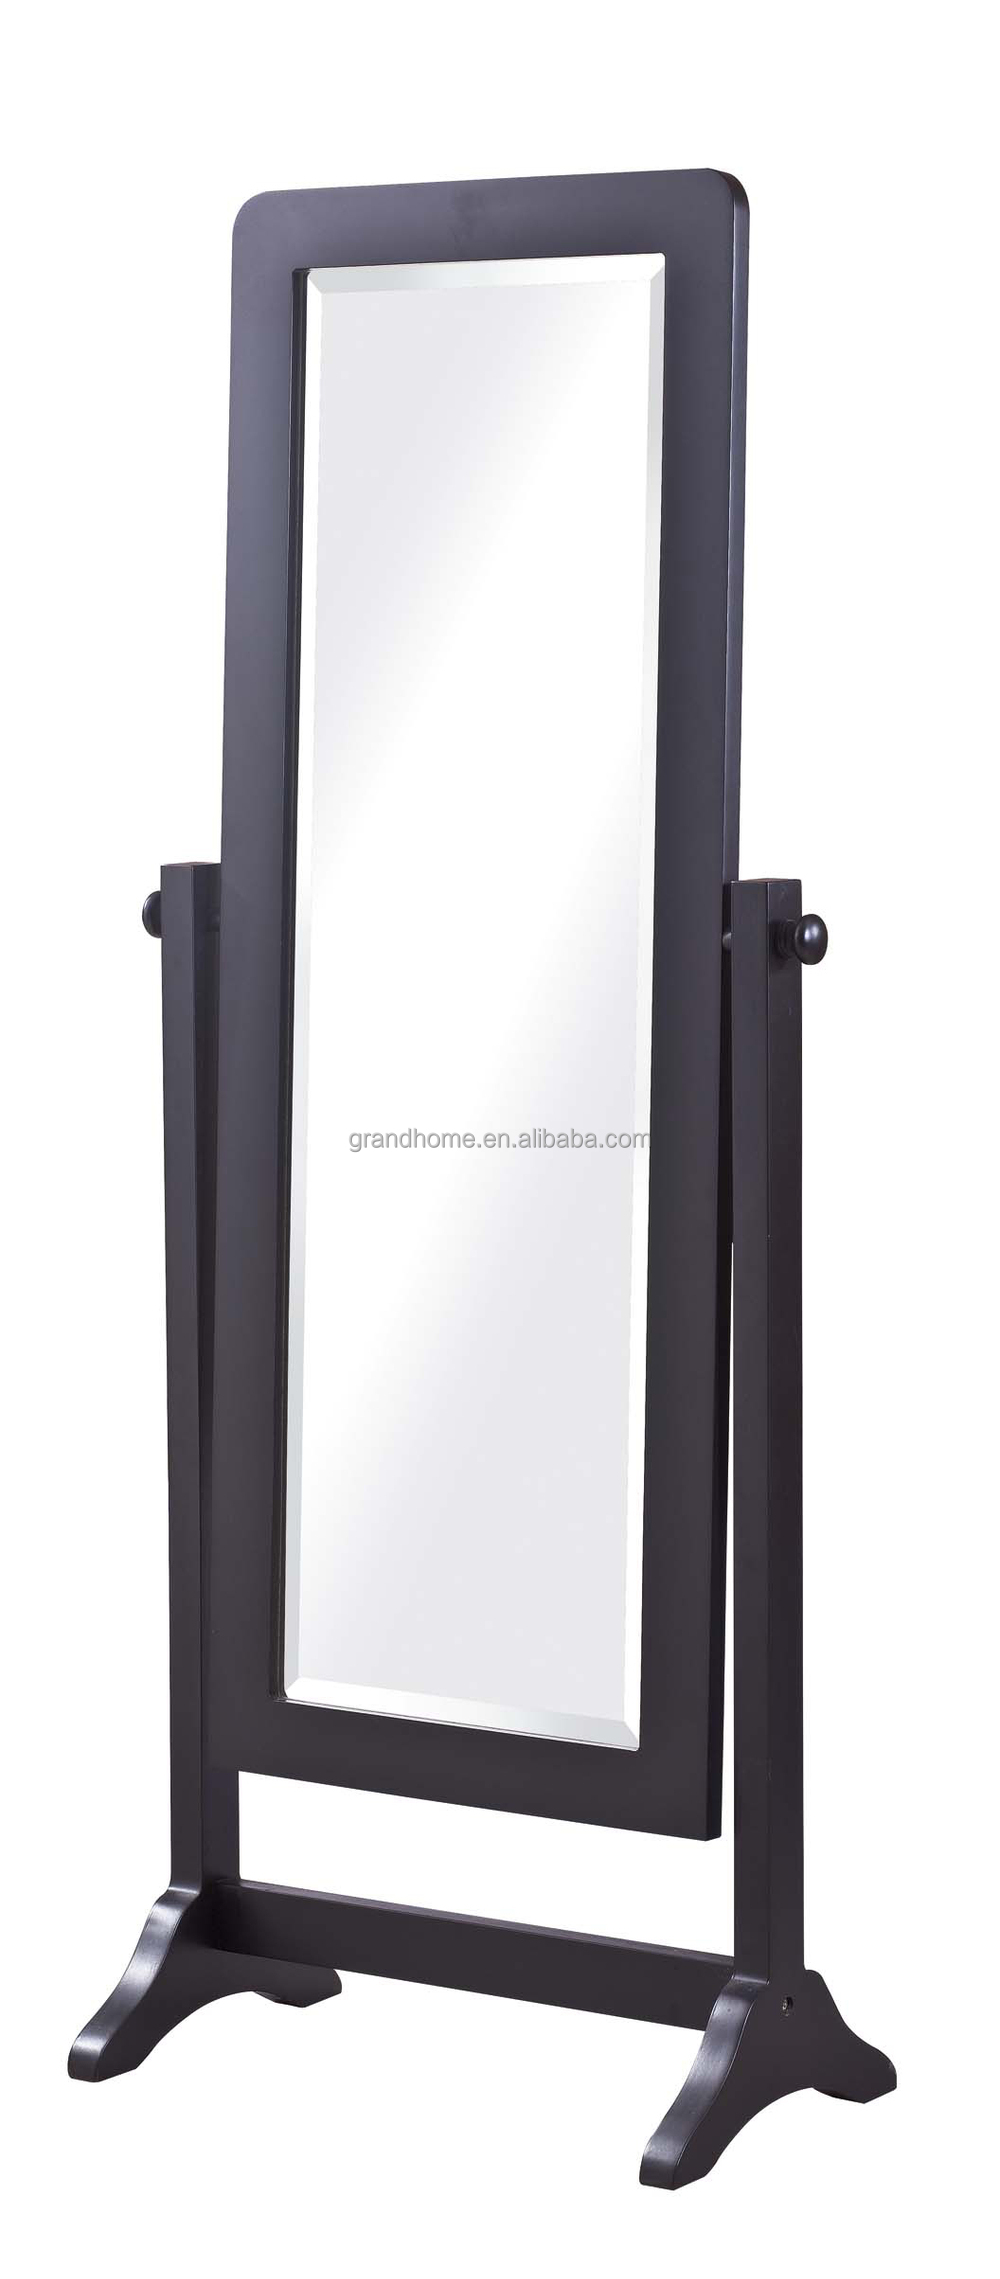 China Manufacturer Living Room Furniture Mirrored Jewelry Armoire Wholesale F